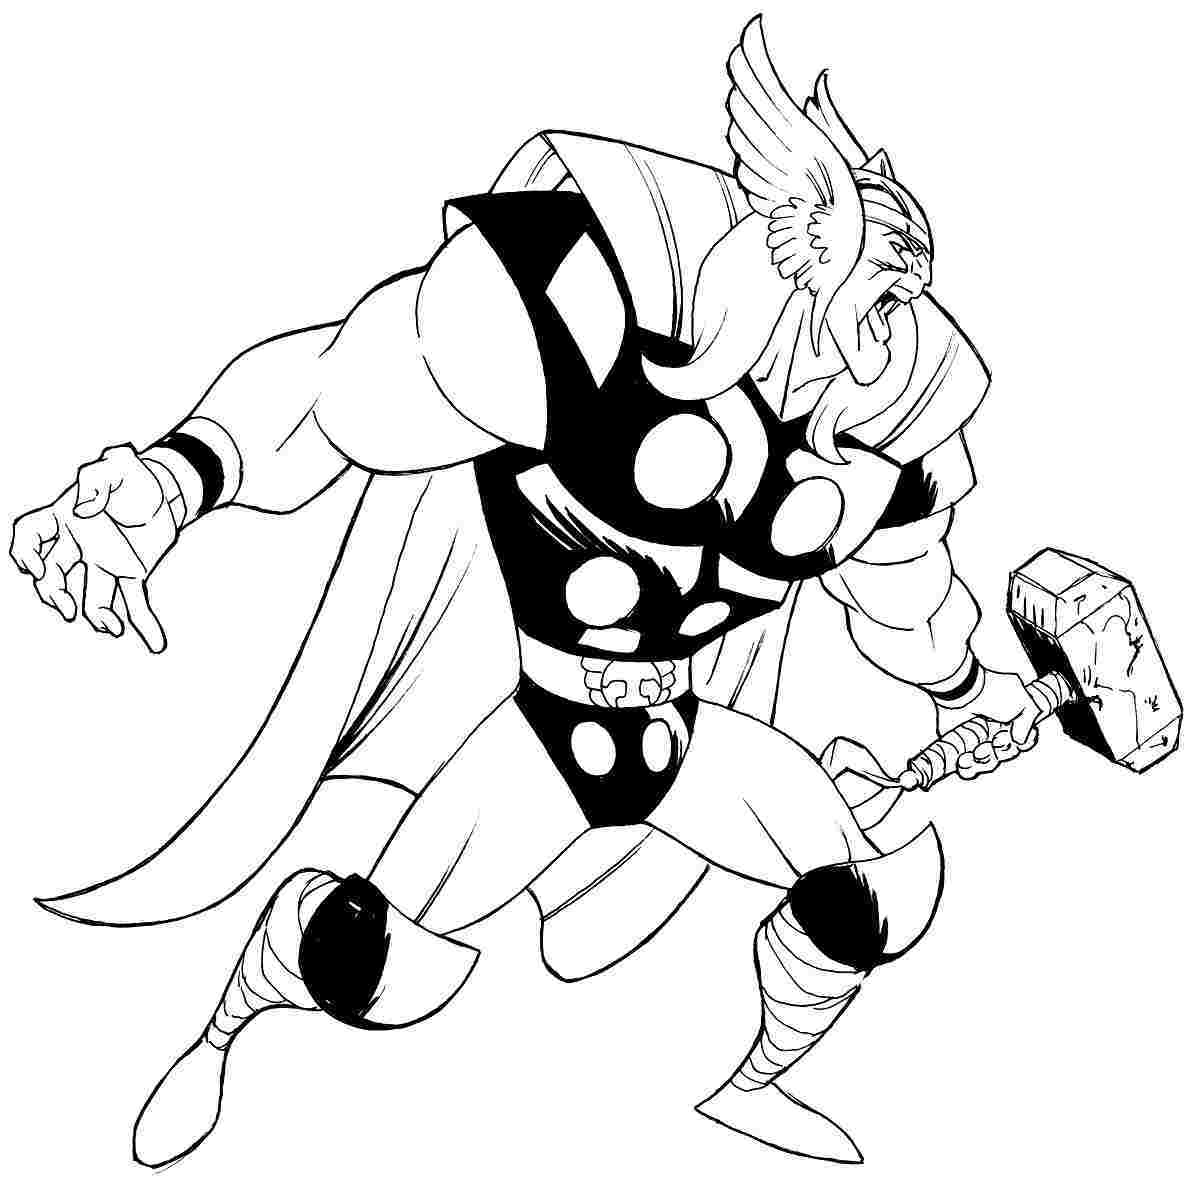 1195x1178 Stunning Avengers Thor Coloring Page Printable For Menmadehome